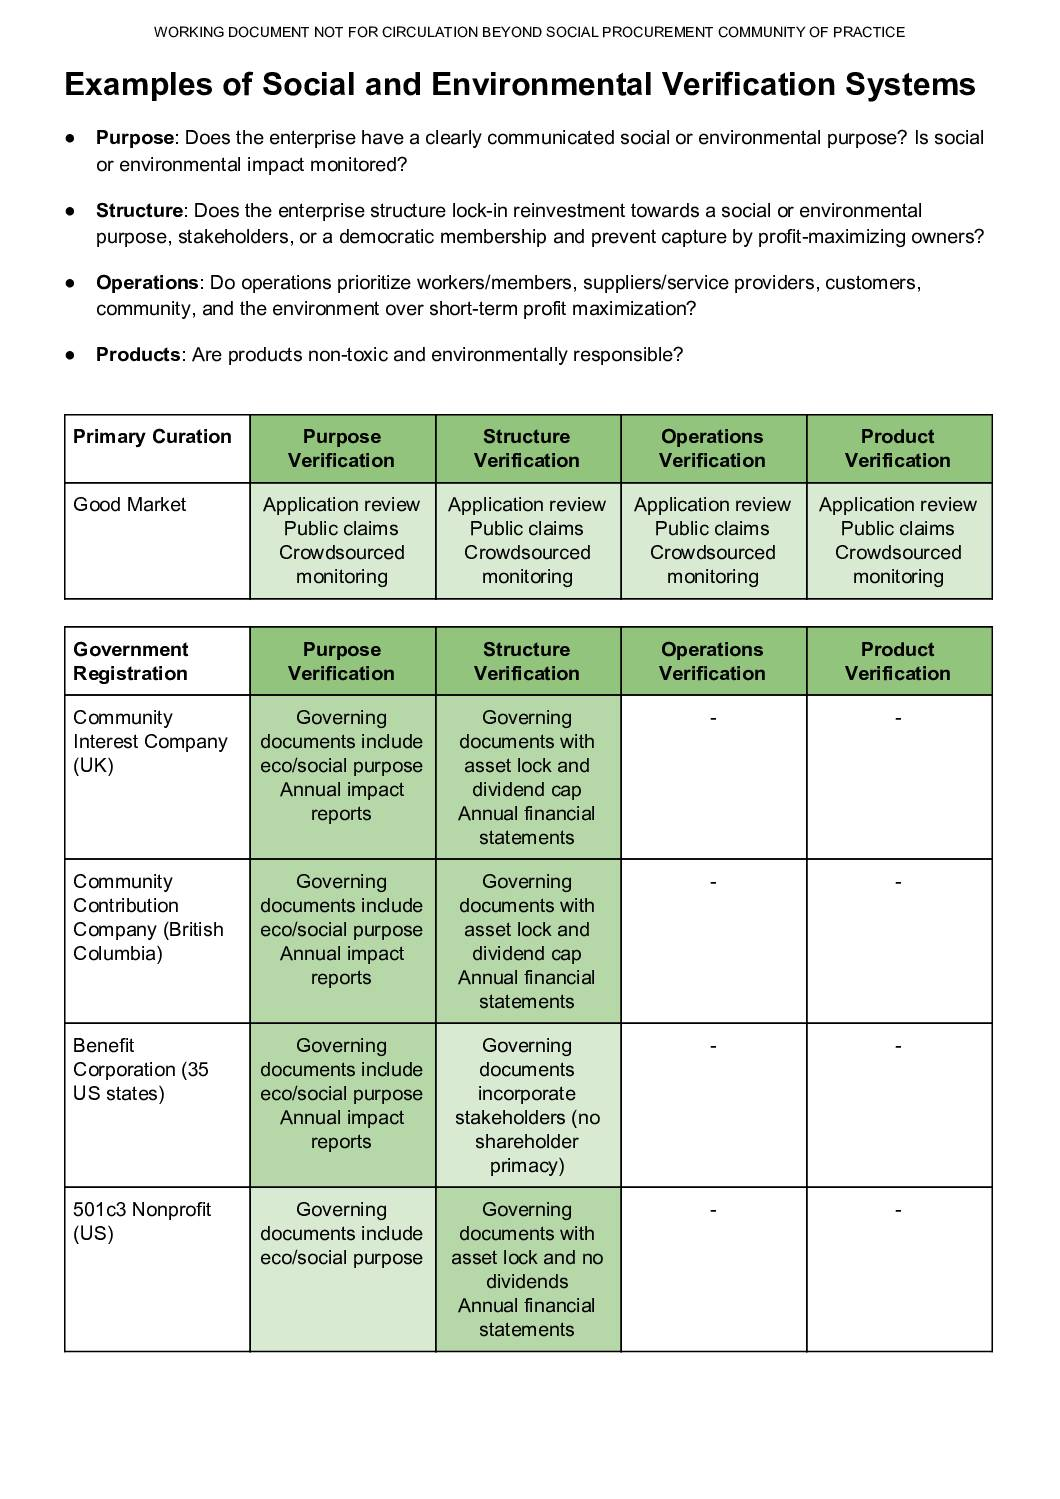 Examples of Social and Environmental Verification Systems